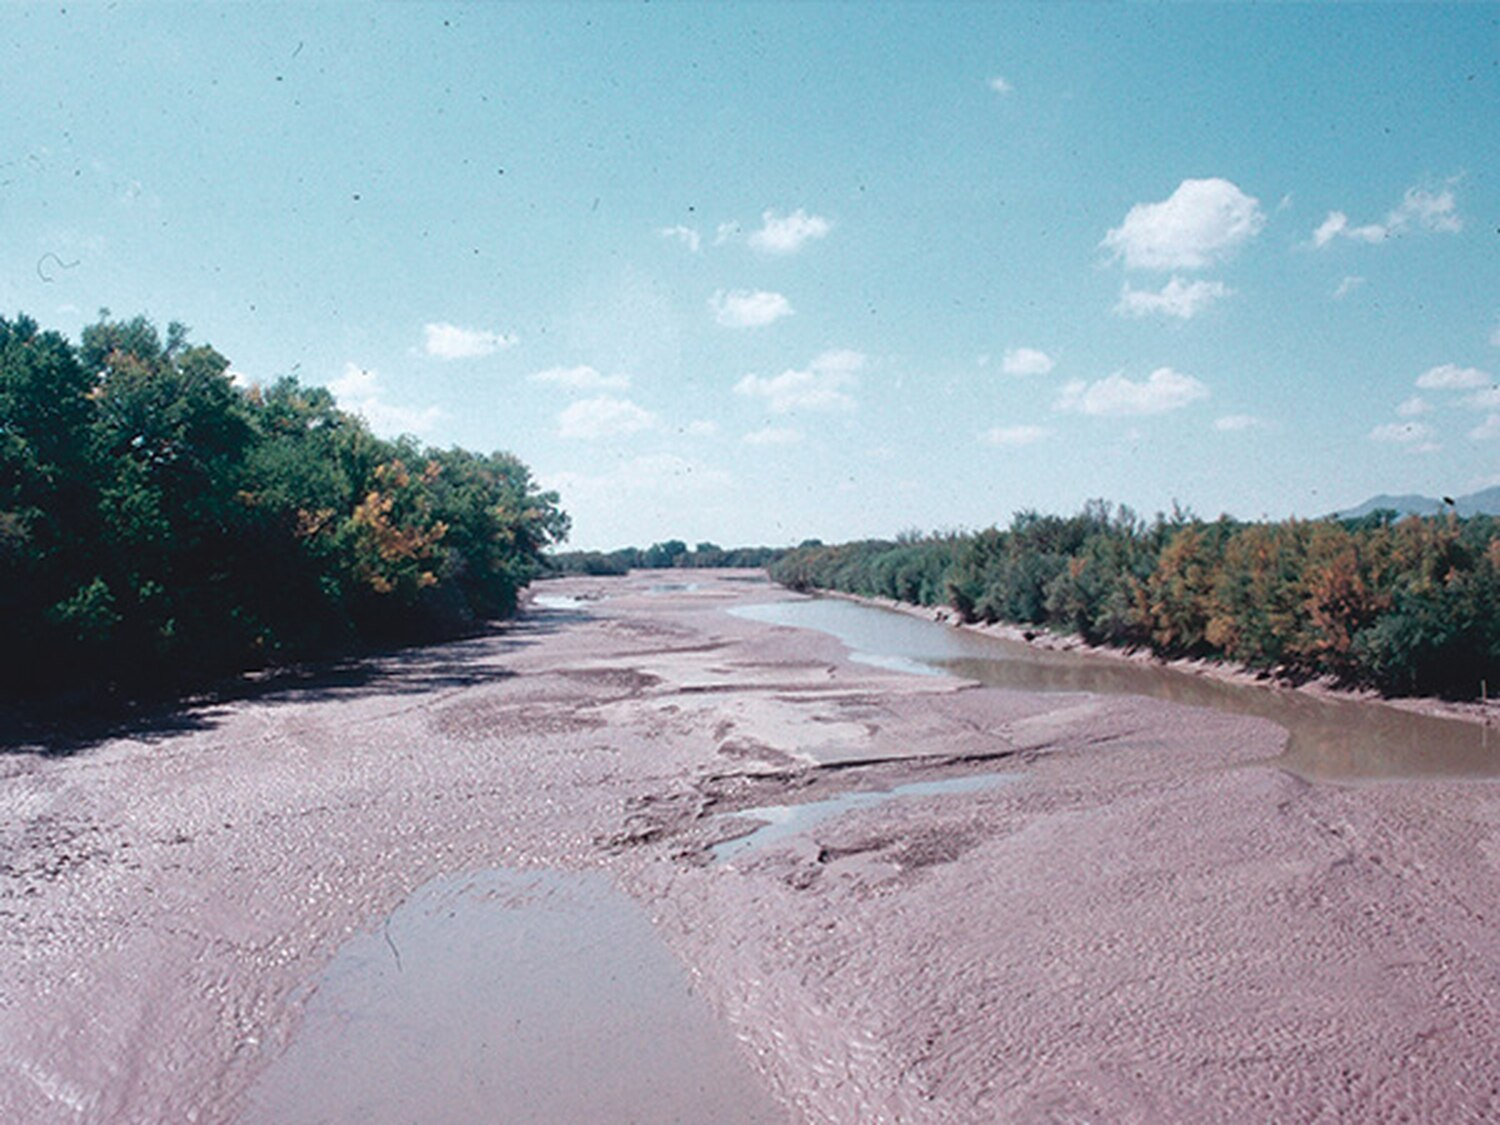 Hot, dry conditions have already caused severe drying of the Rio Grande—to the point that, earlier this month, water managers had to irrigate the river.